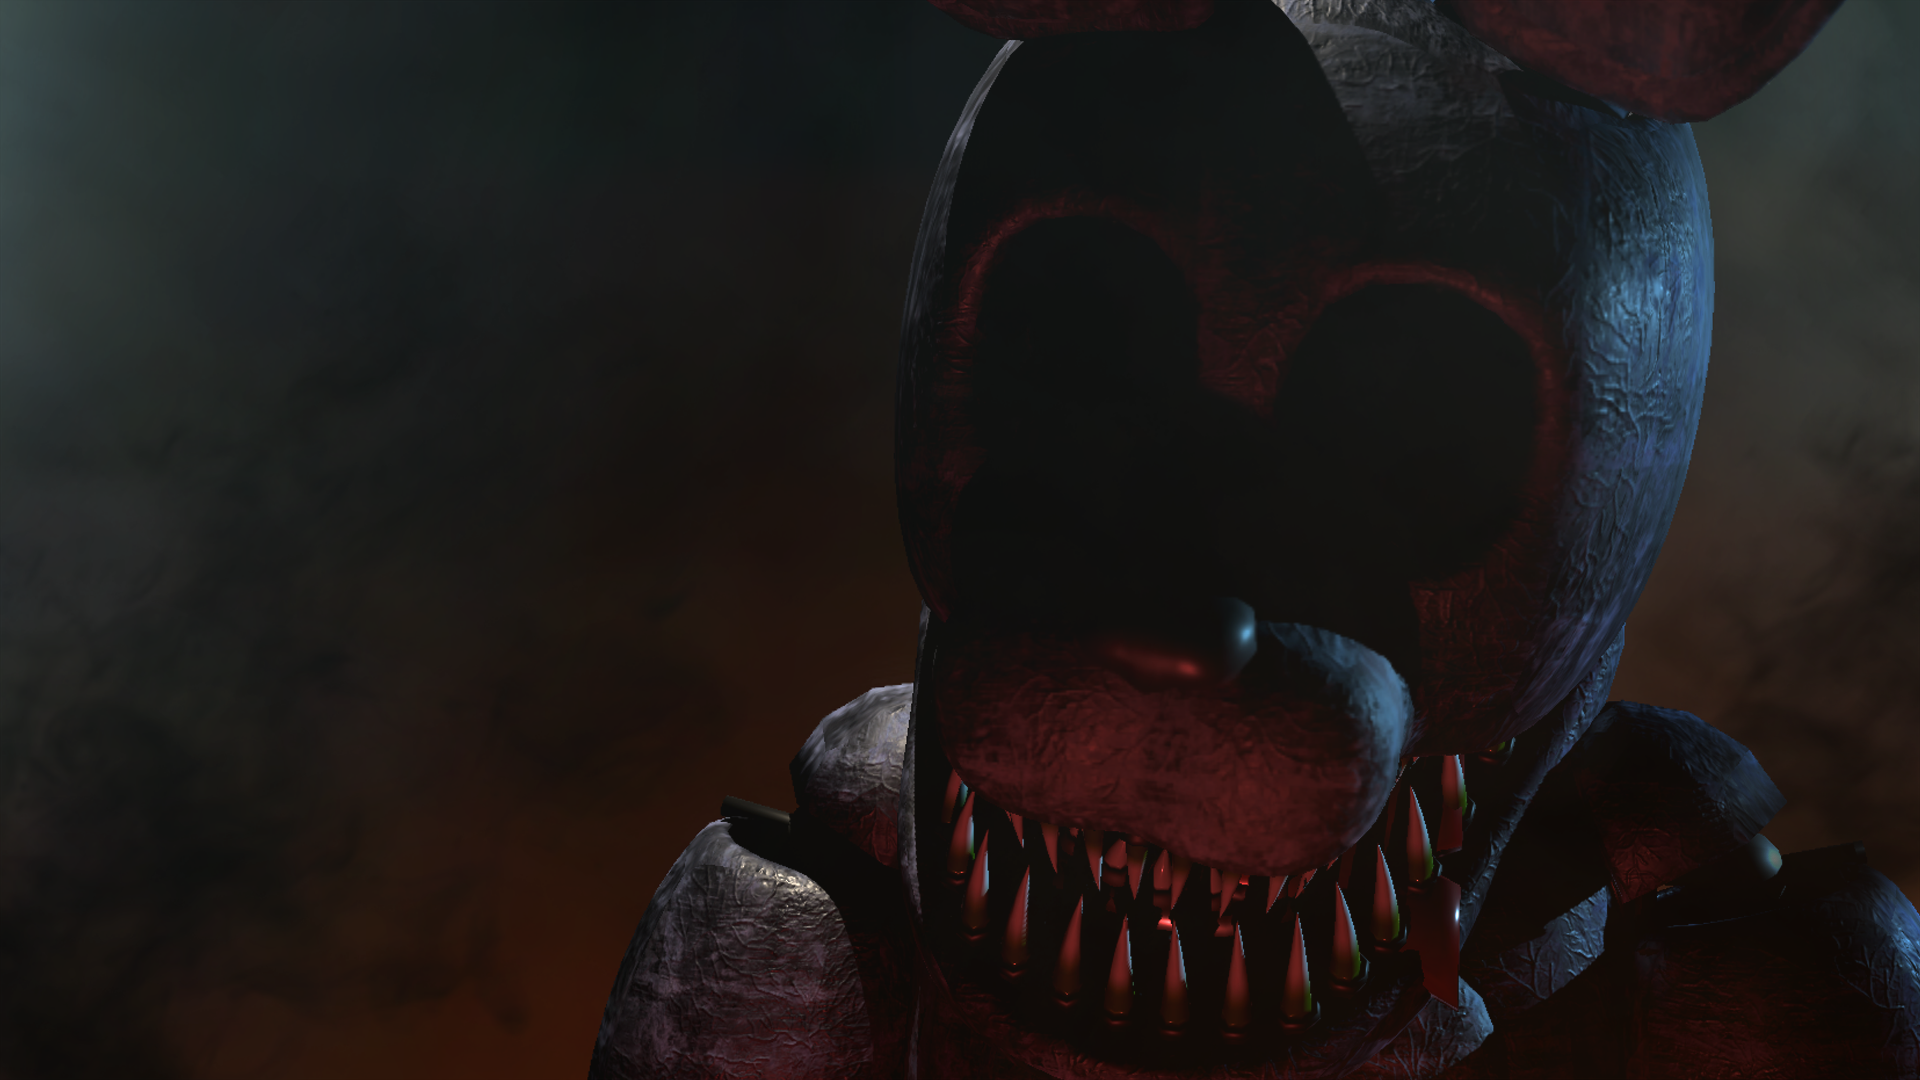 Sinister Bonnie Is One Of The Main Antagonists In Sinister Turmoil Sinister Bonnie Is A Large Bipedal Animatronic Rabbi Fnaf Five Nights At Freddy S Sinister